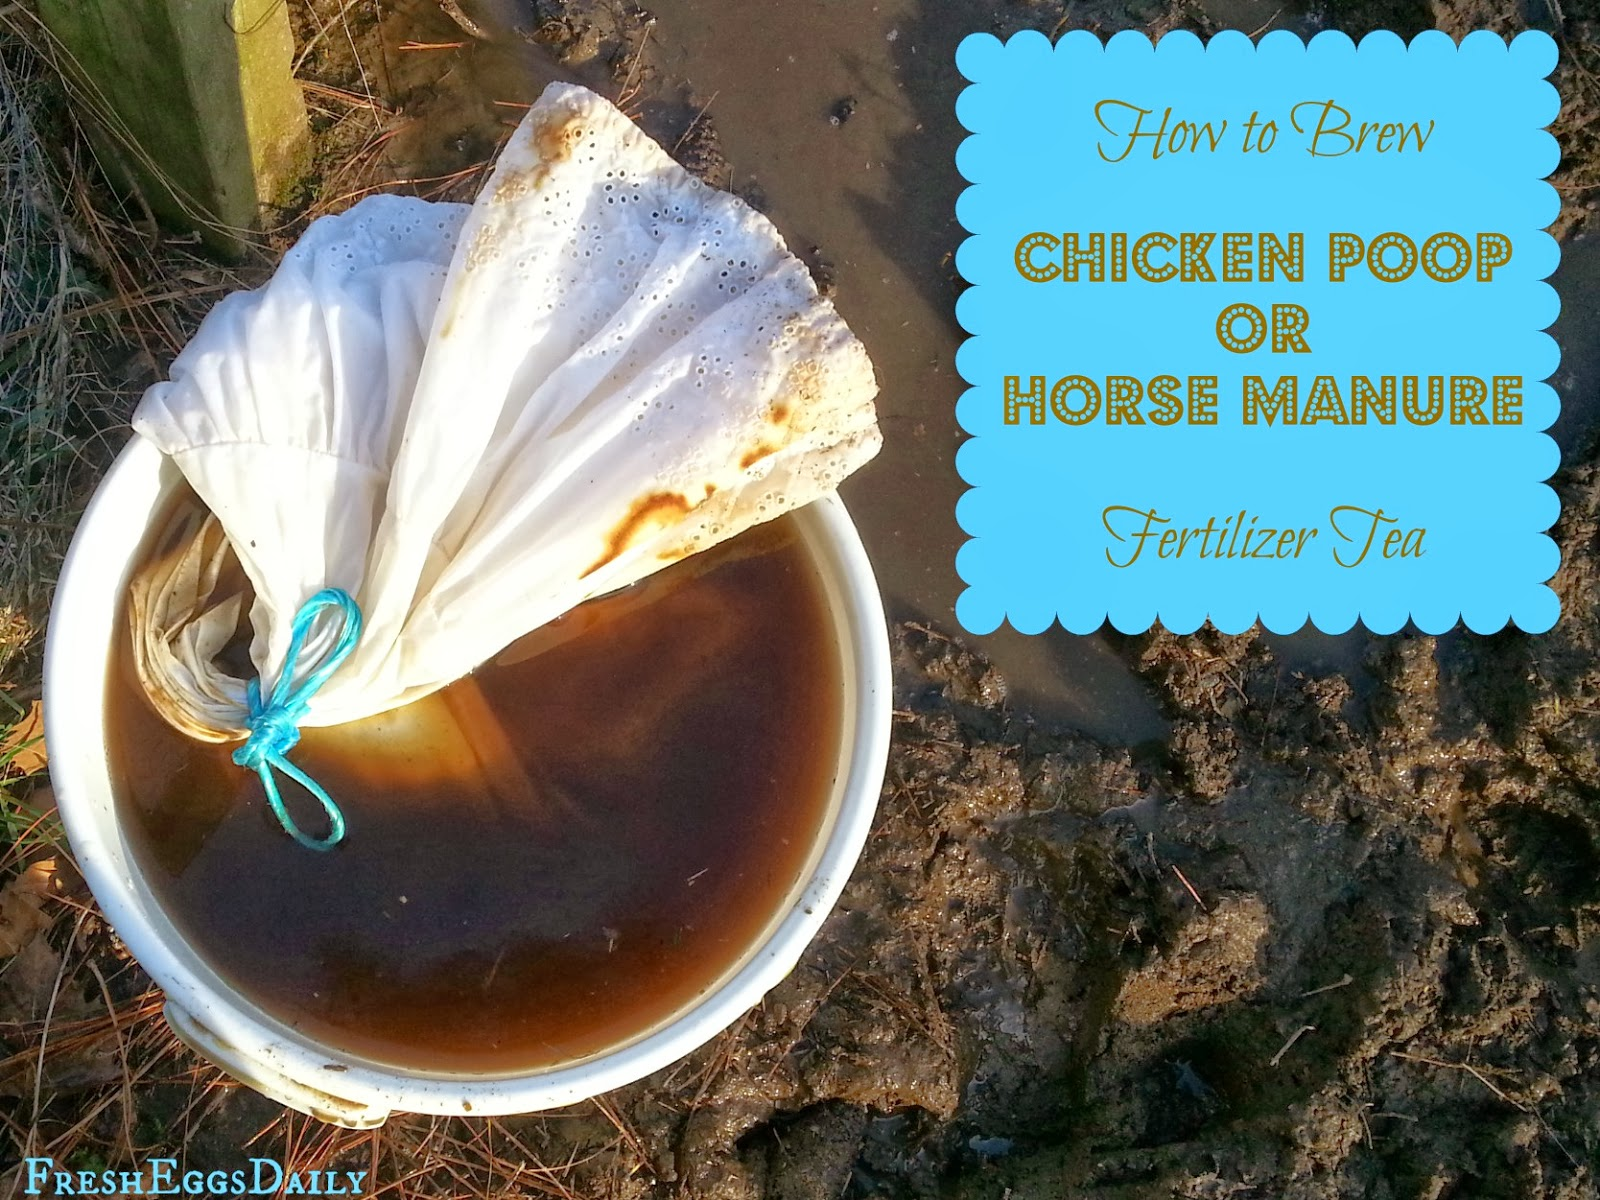 How To Brew Chicken Poop Or Horse Manure Fertilizer Tea For Your